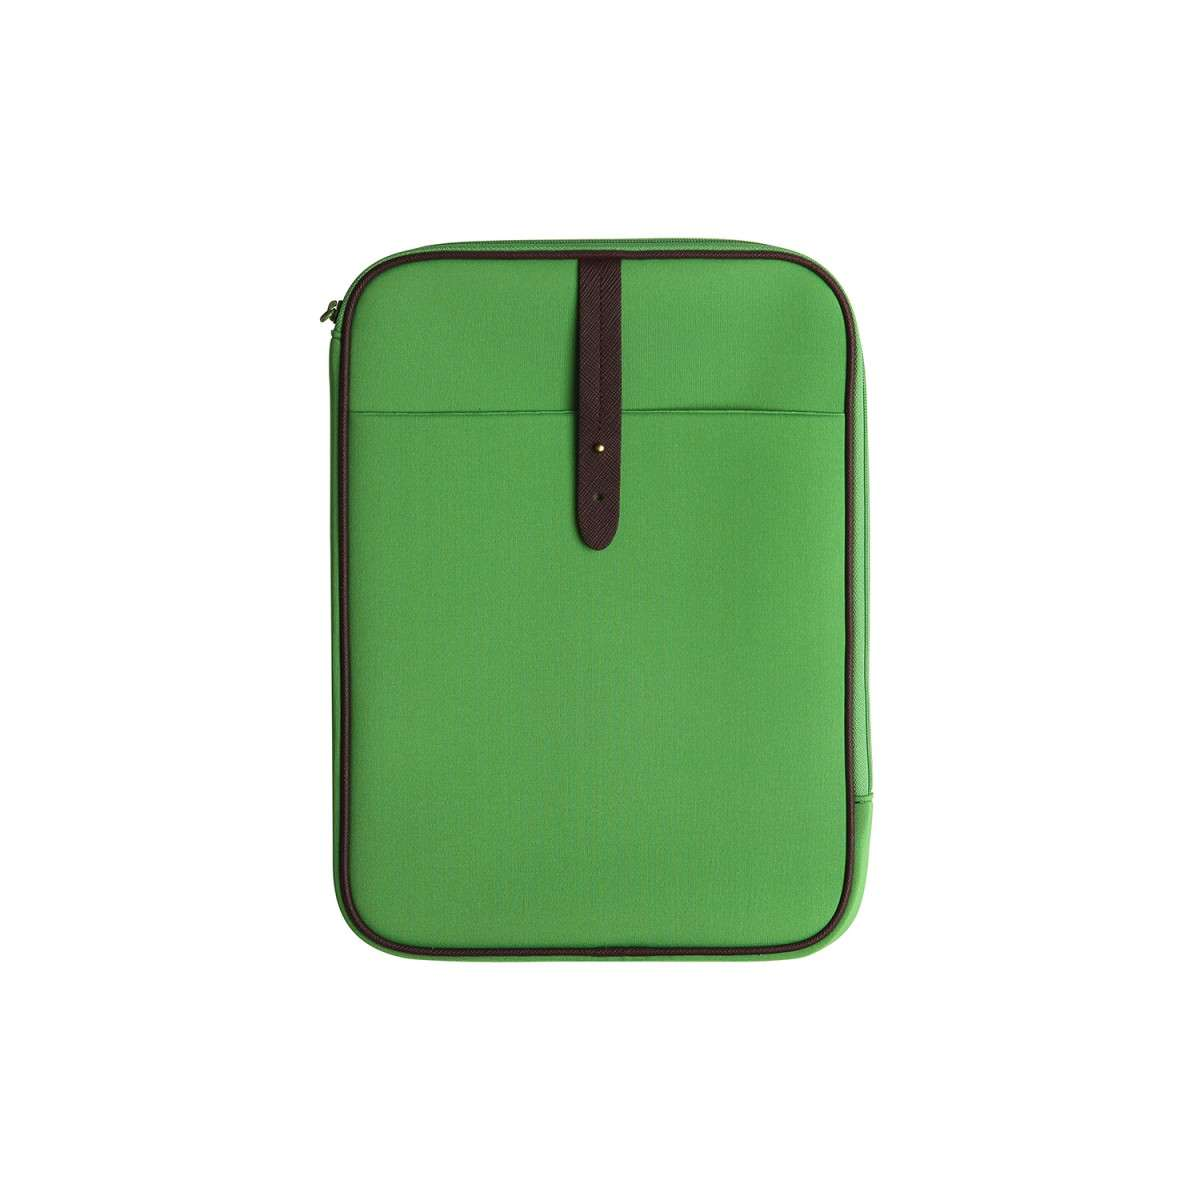 m. Humming Neo Tablet PC pouch - Green